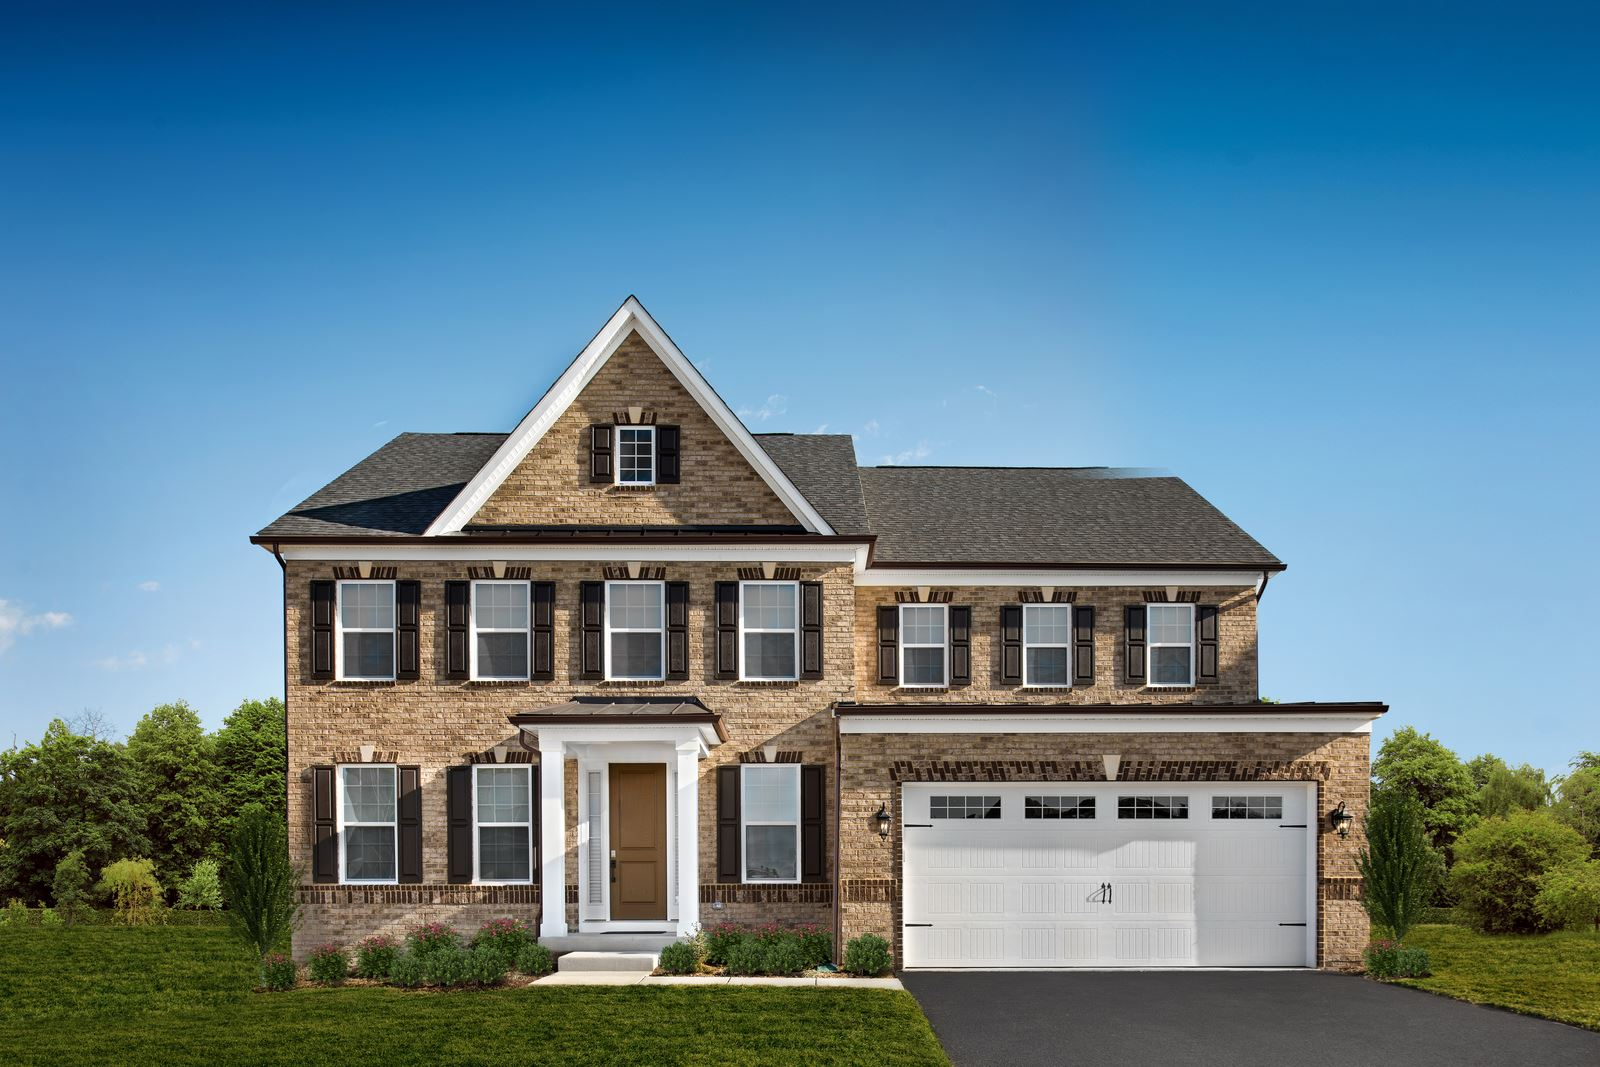 Maple Lawn South In Fulton Md Prices Plans Availability